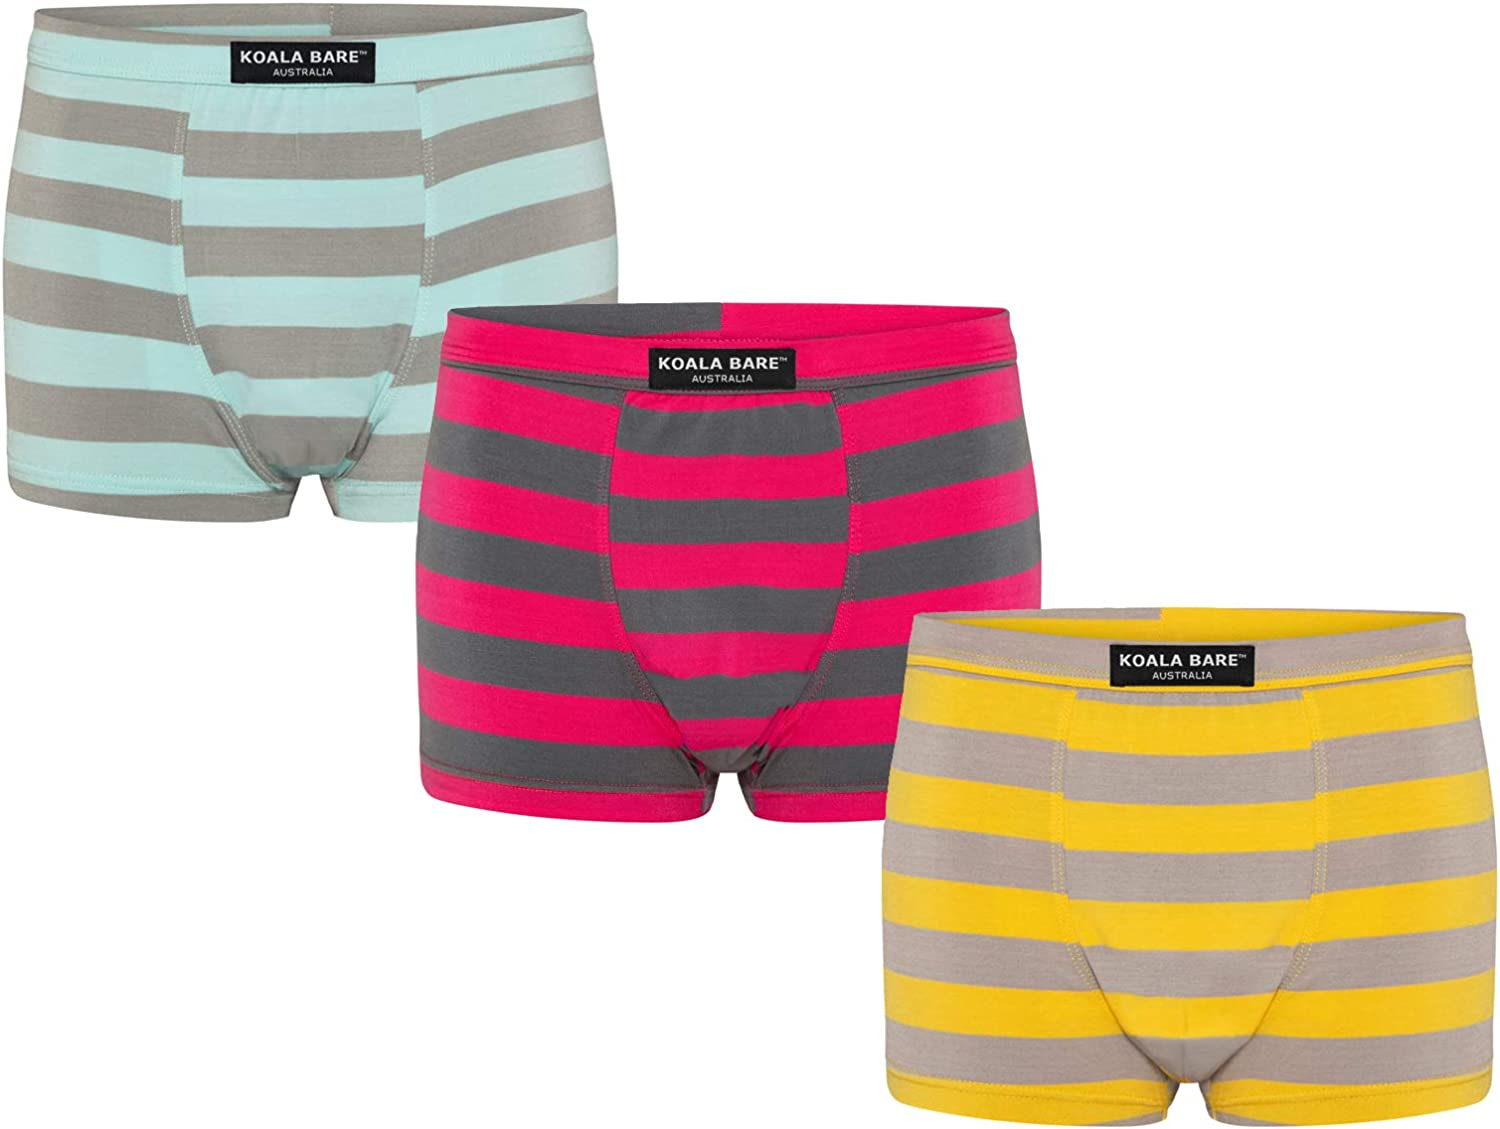 KOALA BARE Boys Bamboo Underwear 3-Pack - 3-10Y Multicolored Soft Comfortable Boxer Briefs, Breathable, Stylish, No Fly